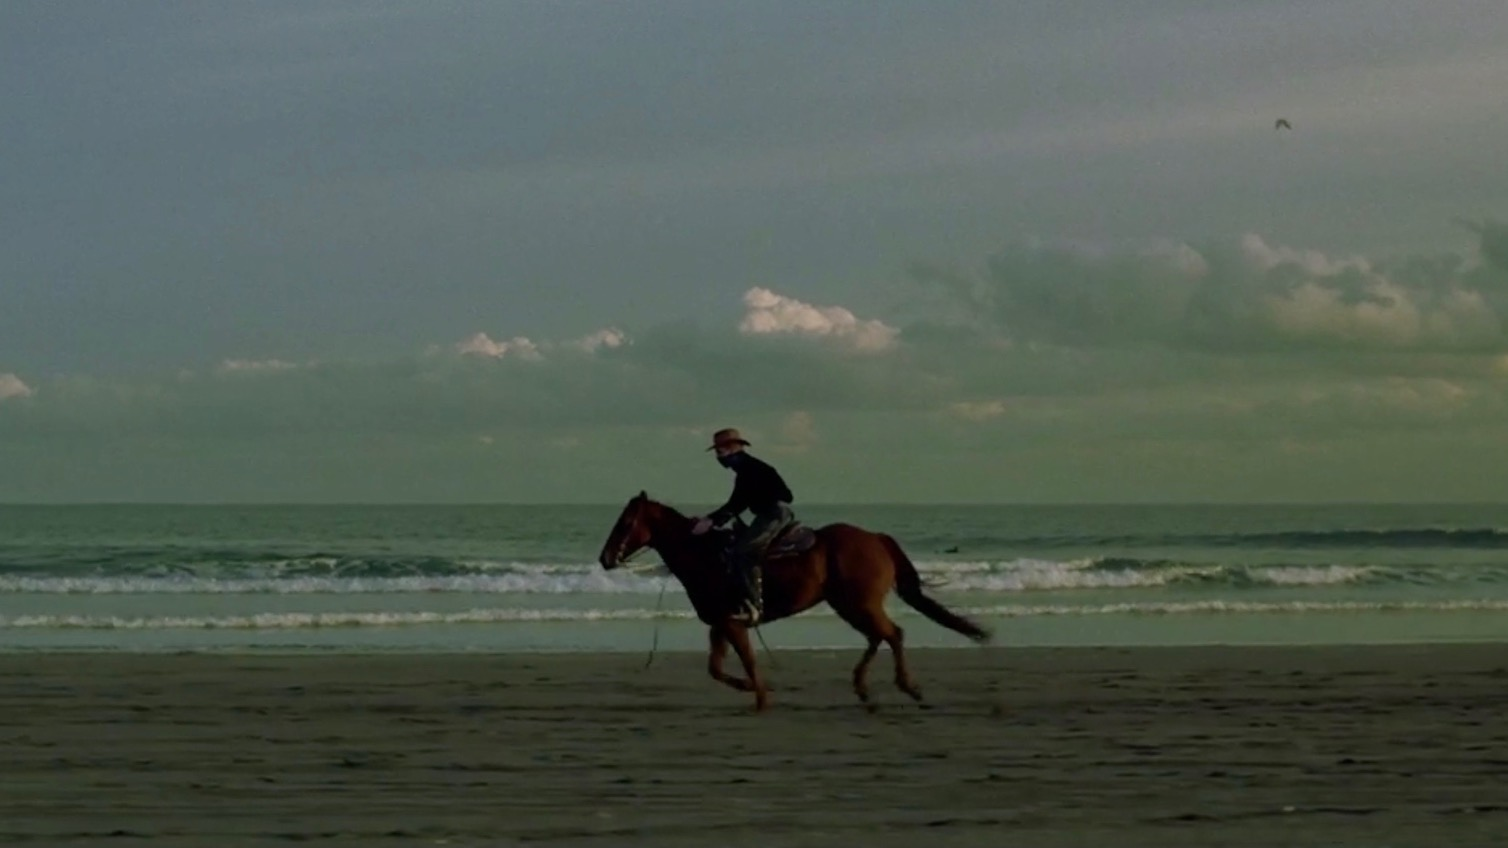 Jieda: A man and a horse